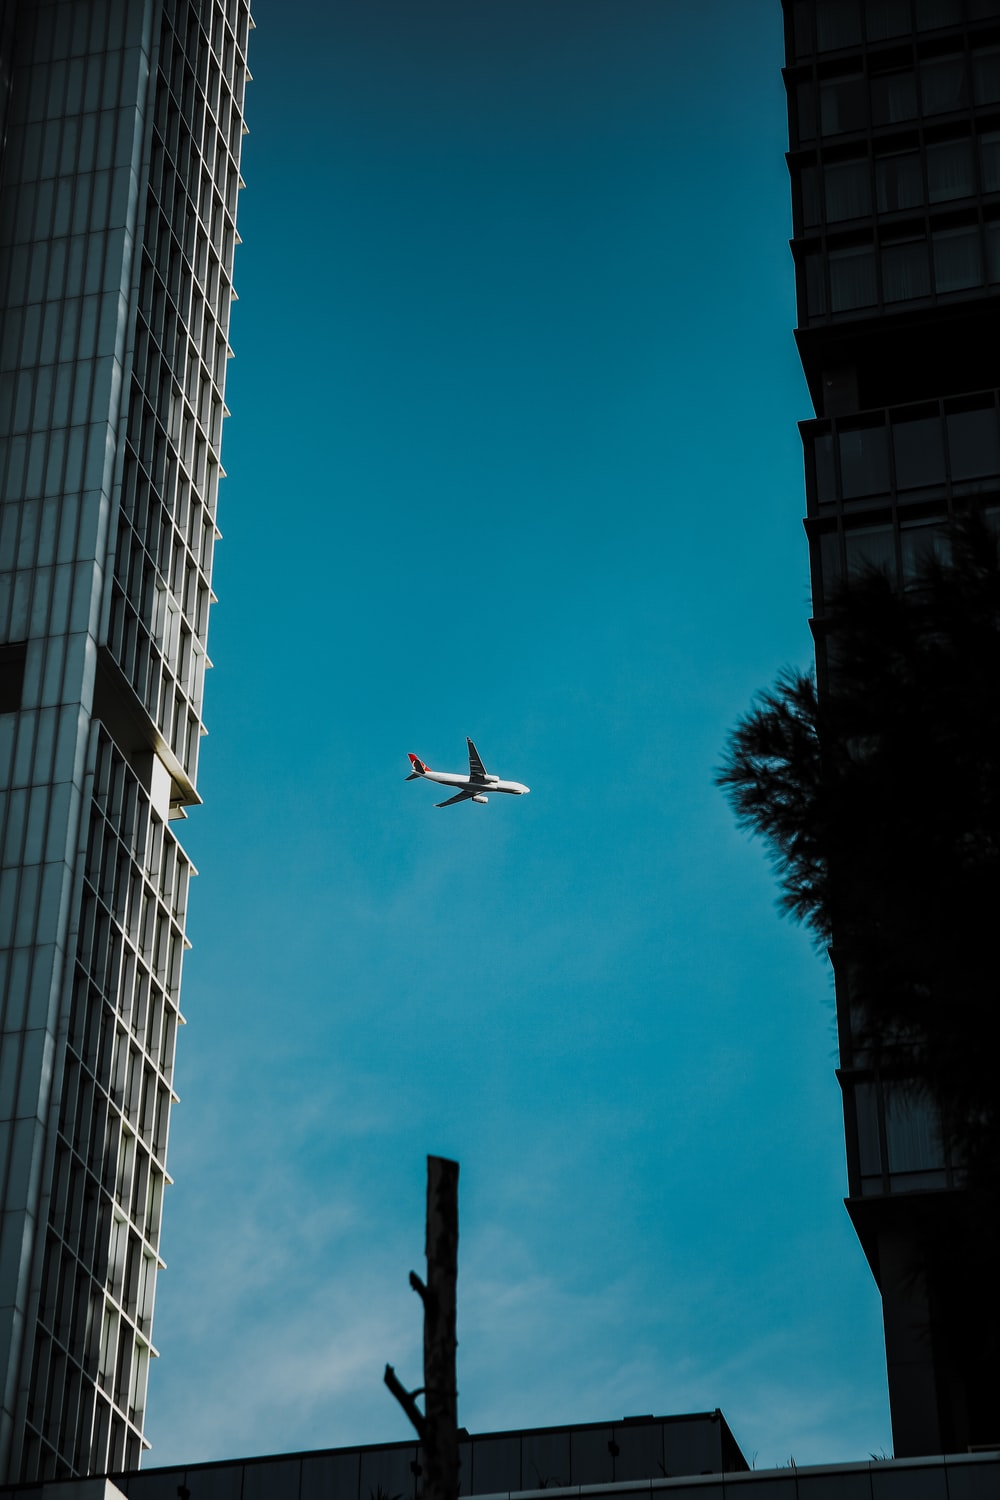 white airplane flying over the building during daytime